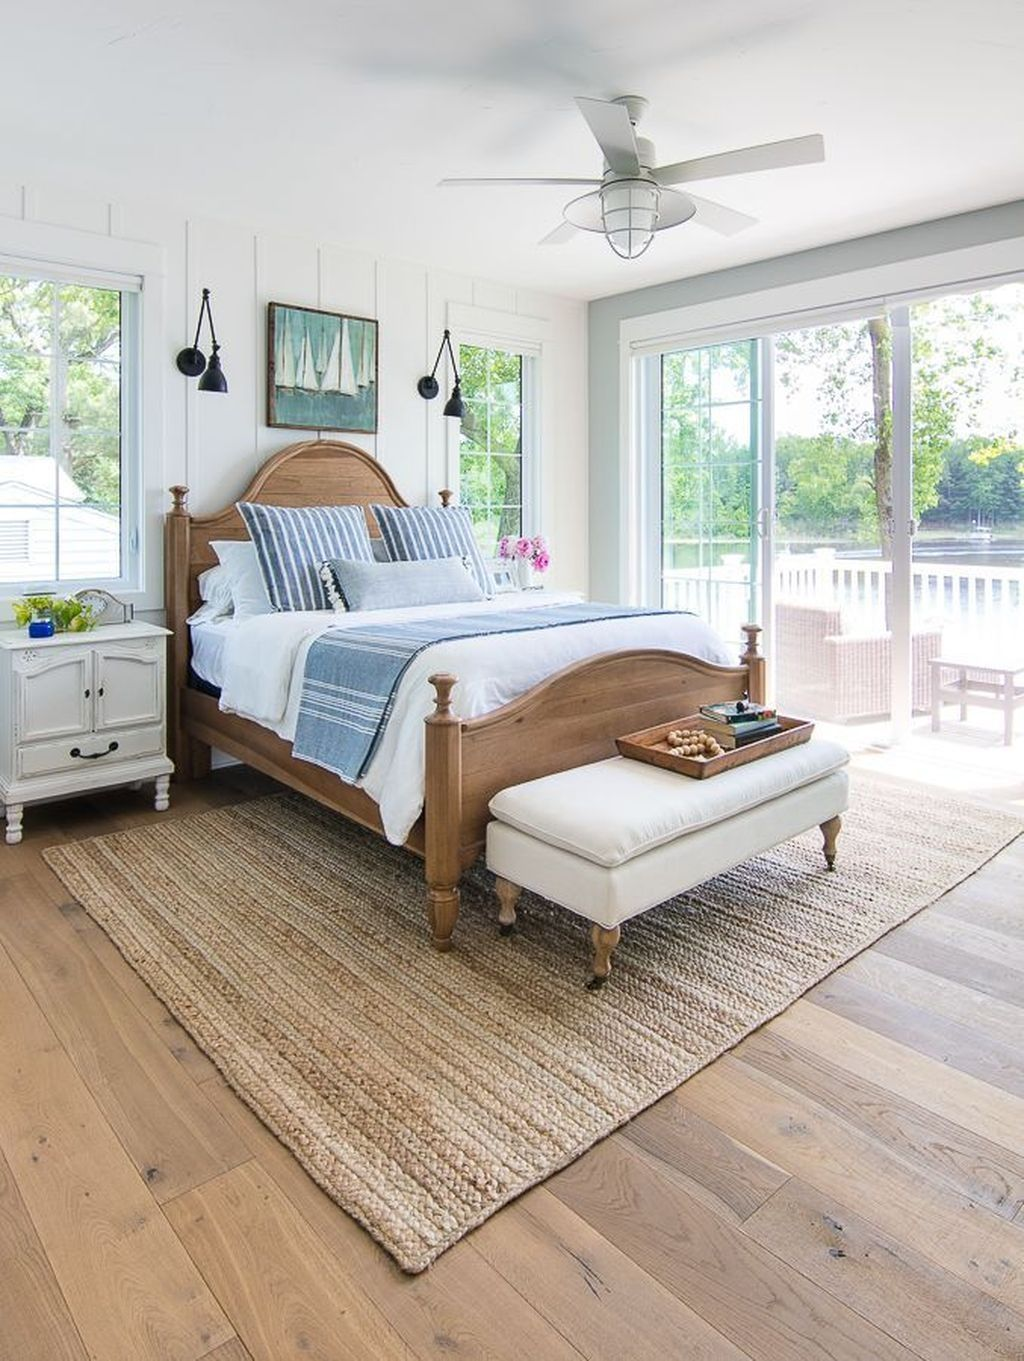 35 Comfortable Lake Bedroom Design Ideas #coastalbedrooms